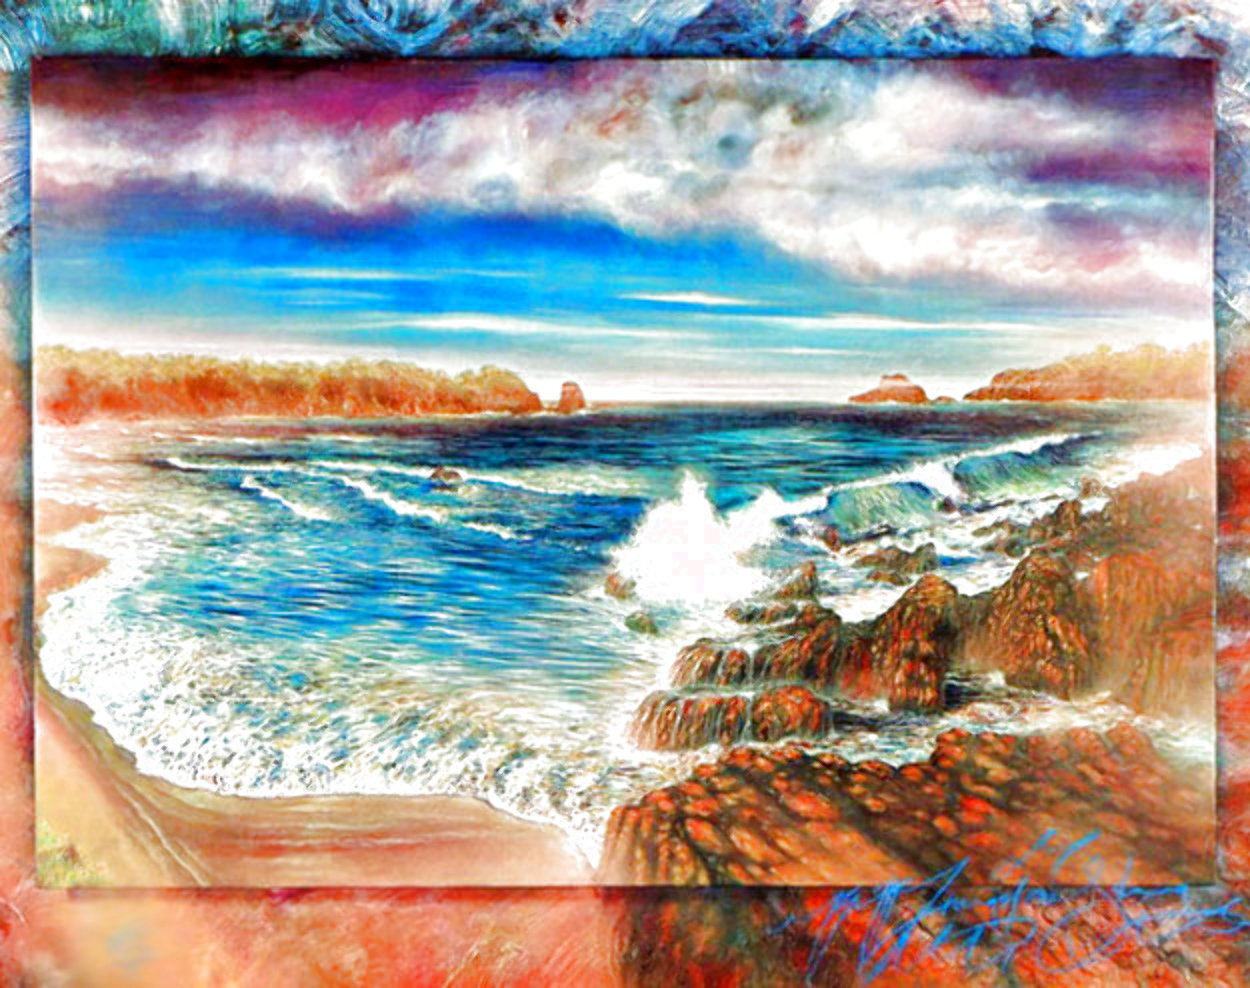 Surreal Sea AP 1990 Huge Limited Edition Print by Brett Livingstone Strong